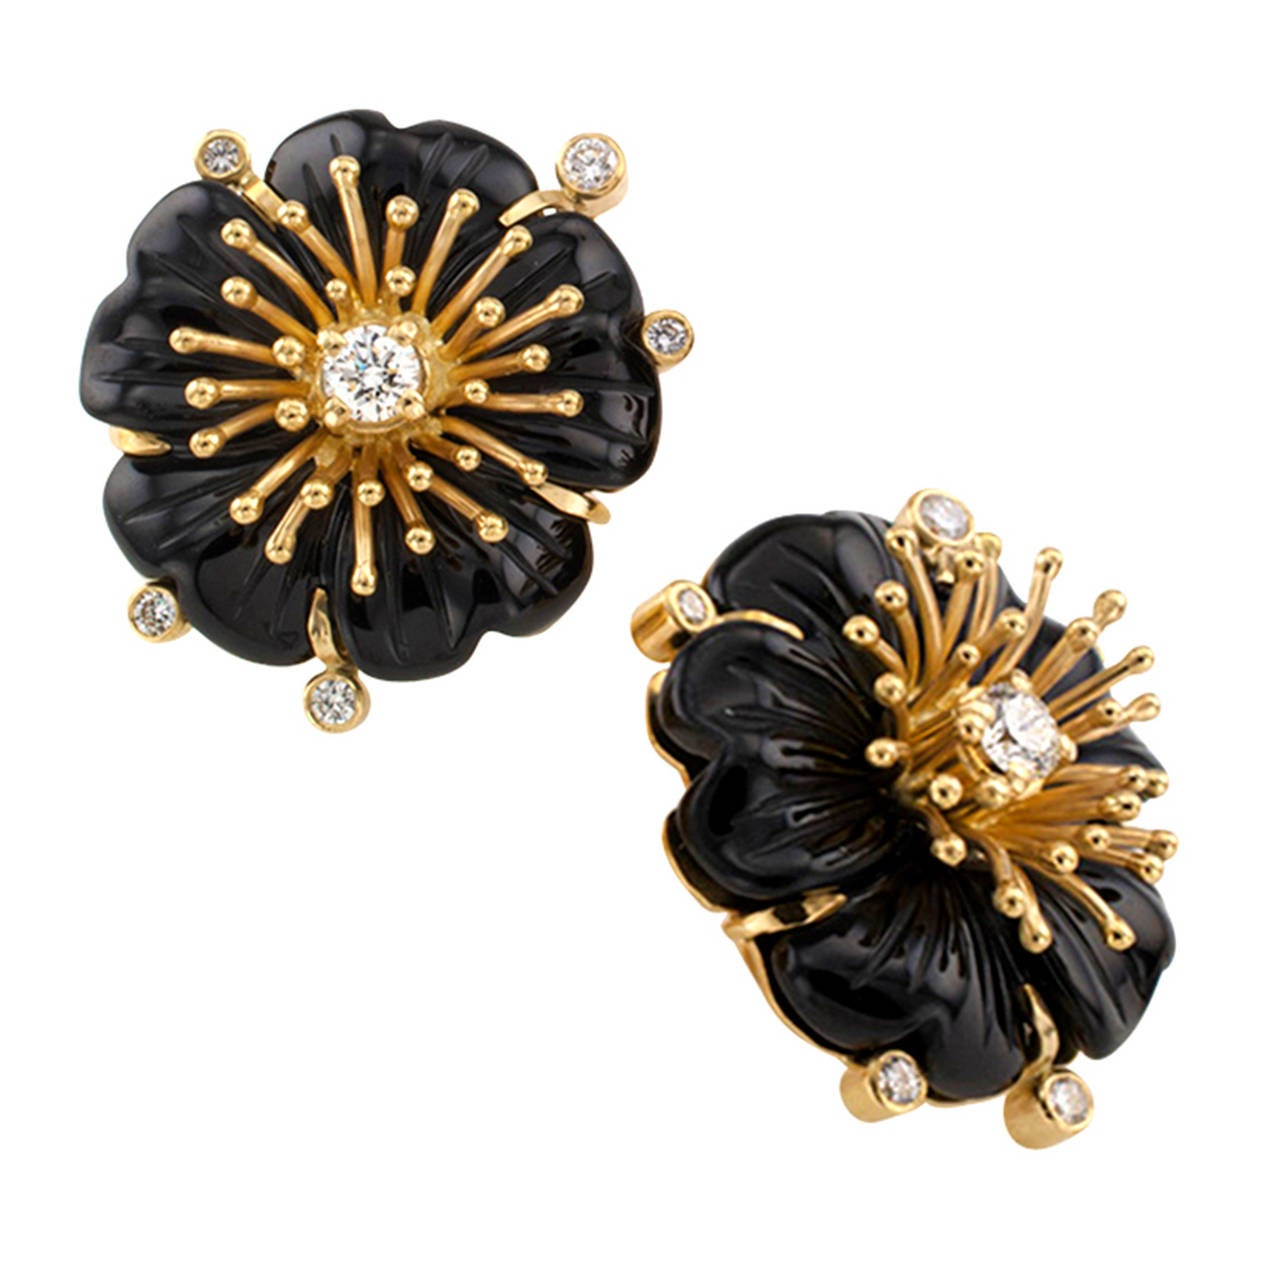 Carved Black Onyx And Diamond Flower Earrings 3